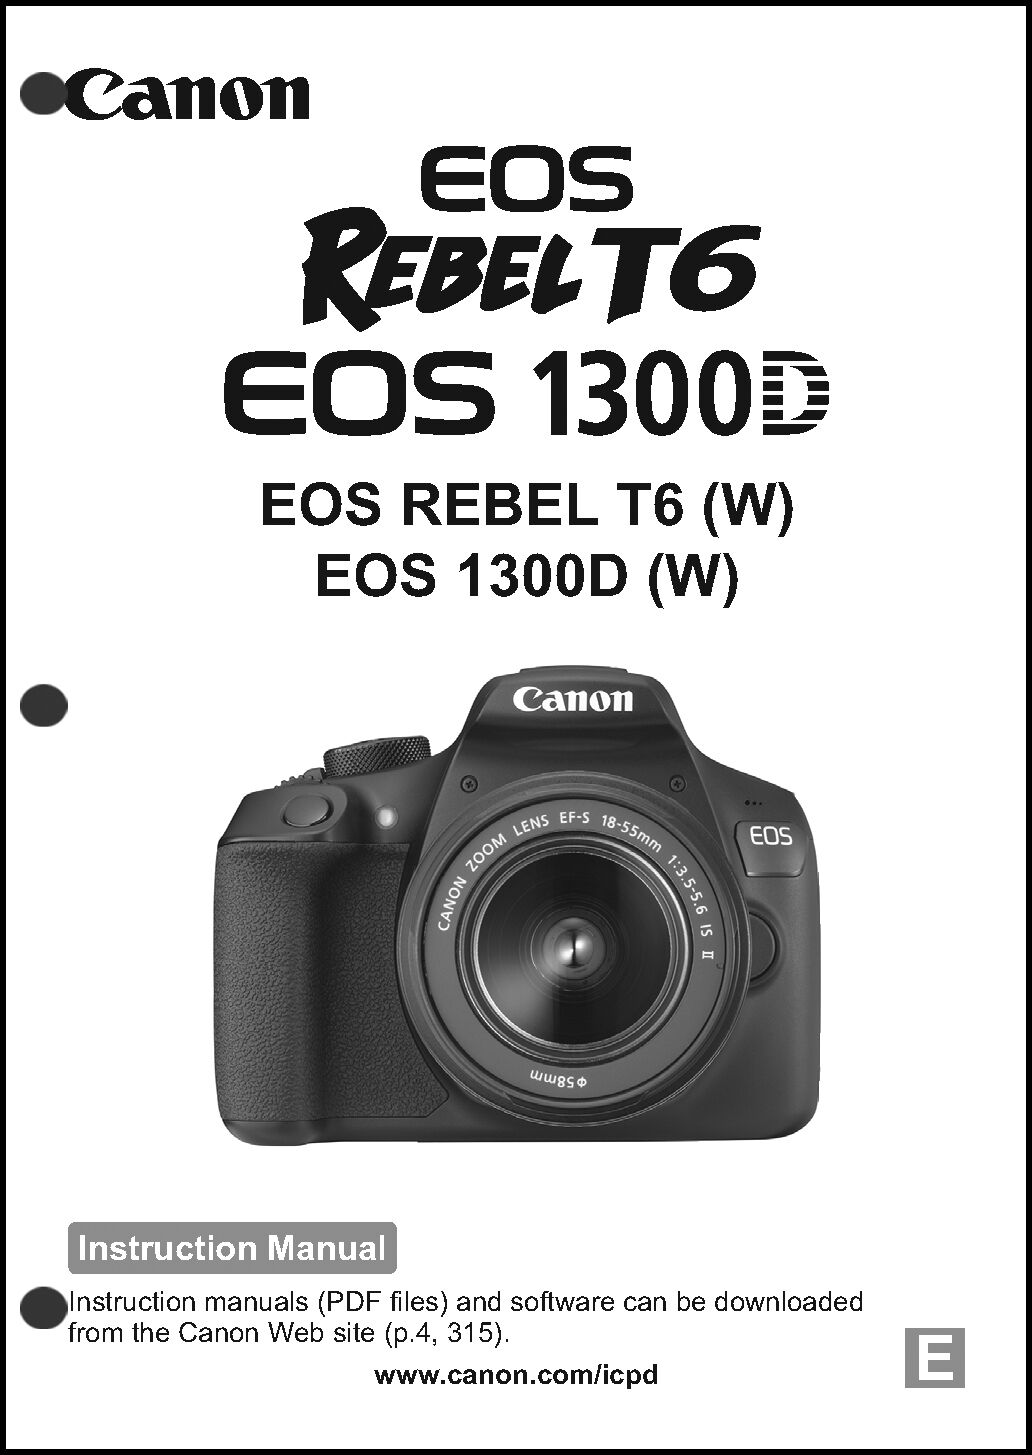 Canon REBEL T6 EOS 1300D Digital Camera User Instruction Guide Manual 1 of  1 See More